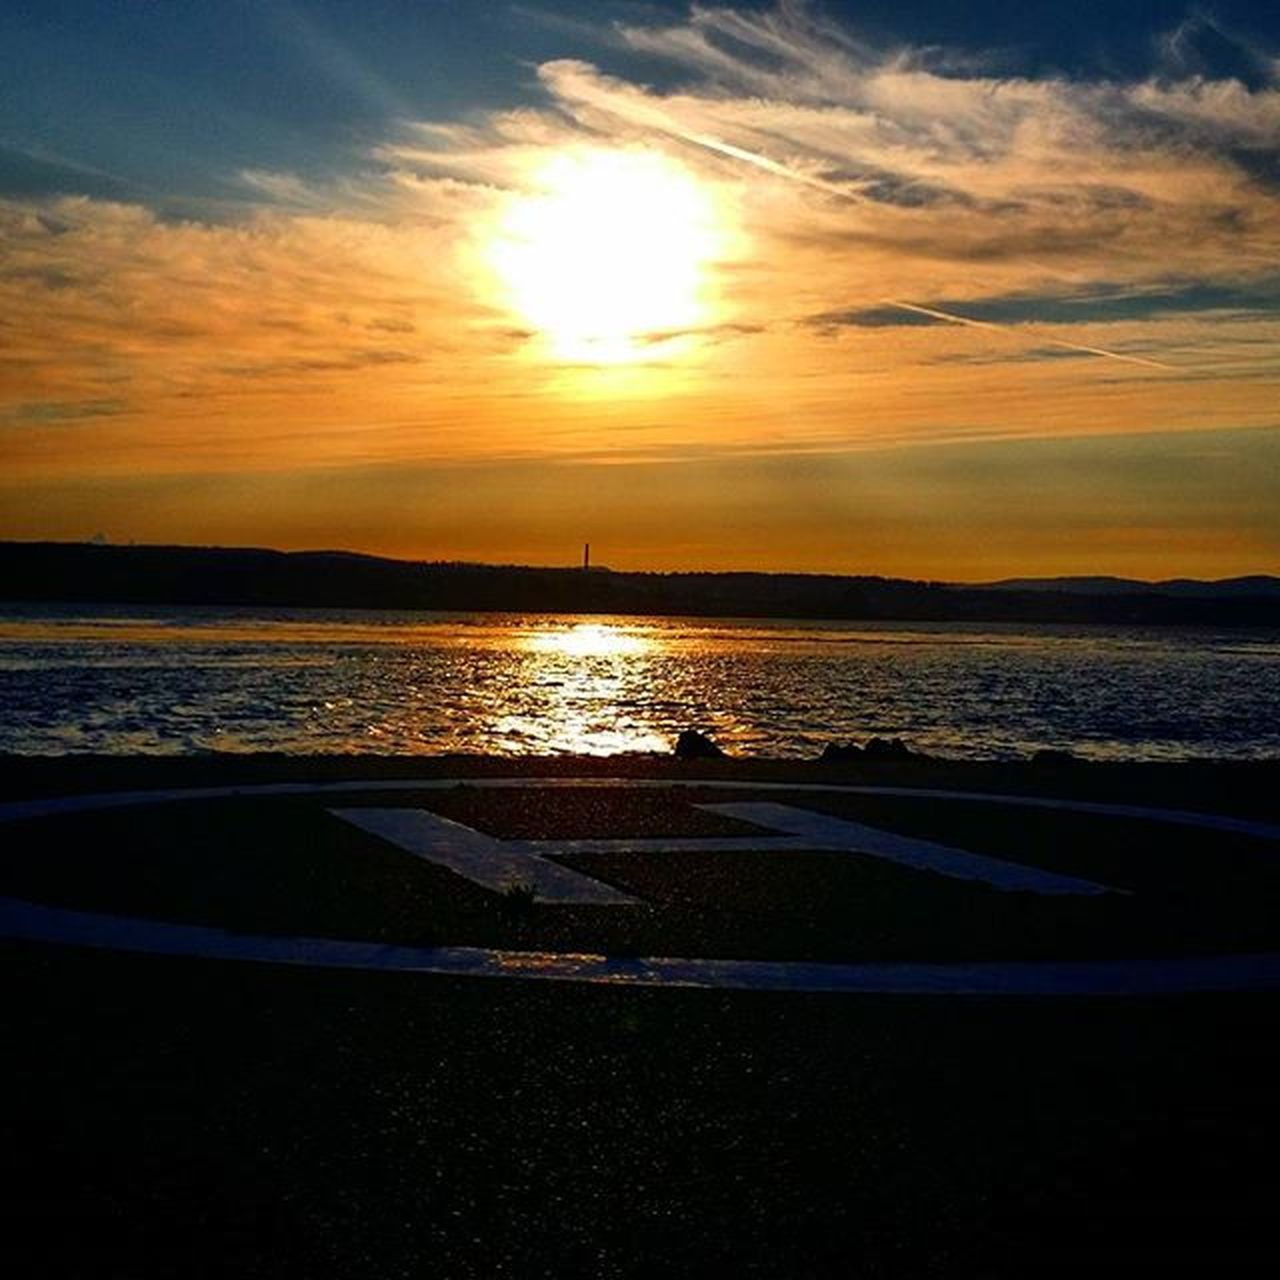 Aprilpoint Quadra Island Britishcolumbia Bcsky Islandlifestyle Vancouverisland Goodevening  Clouds Sunset Sun Pretty Beautiful Colour Color Sky Skyporn Cloudporn Nature Clouds Horizon Photooftheday Gorgeous View dusk silhouette instasky all_sunsets ahh